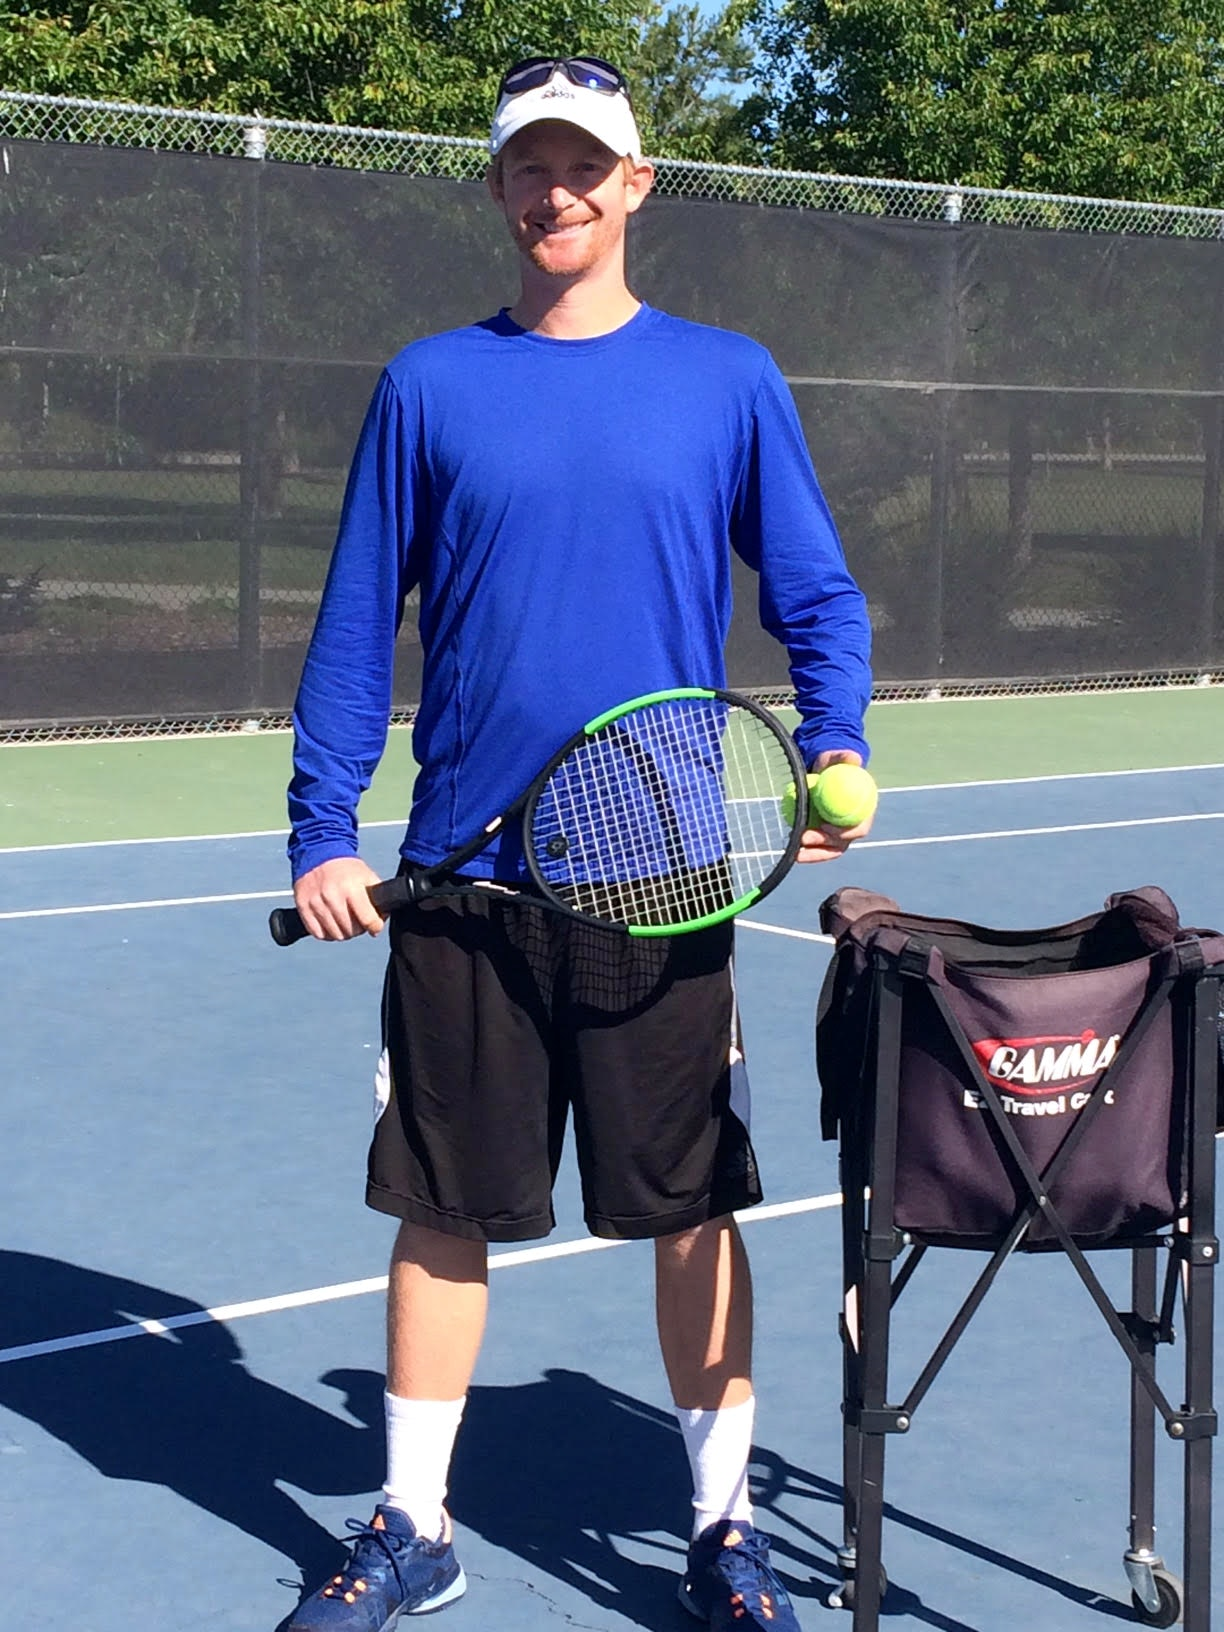 Cole S. teaches tennis lessons in Sacramento, CA